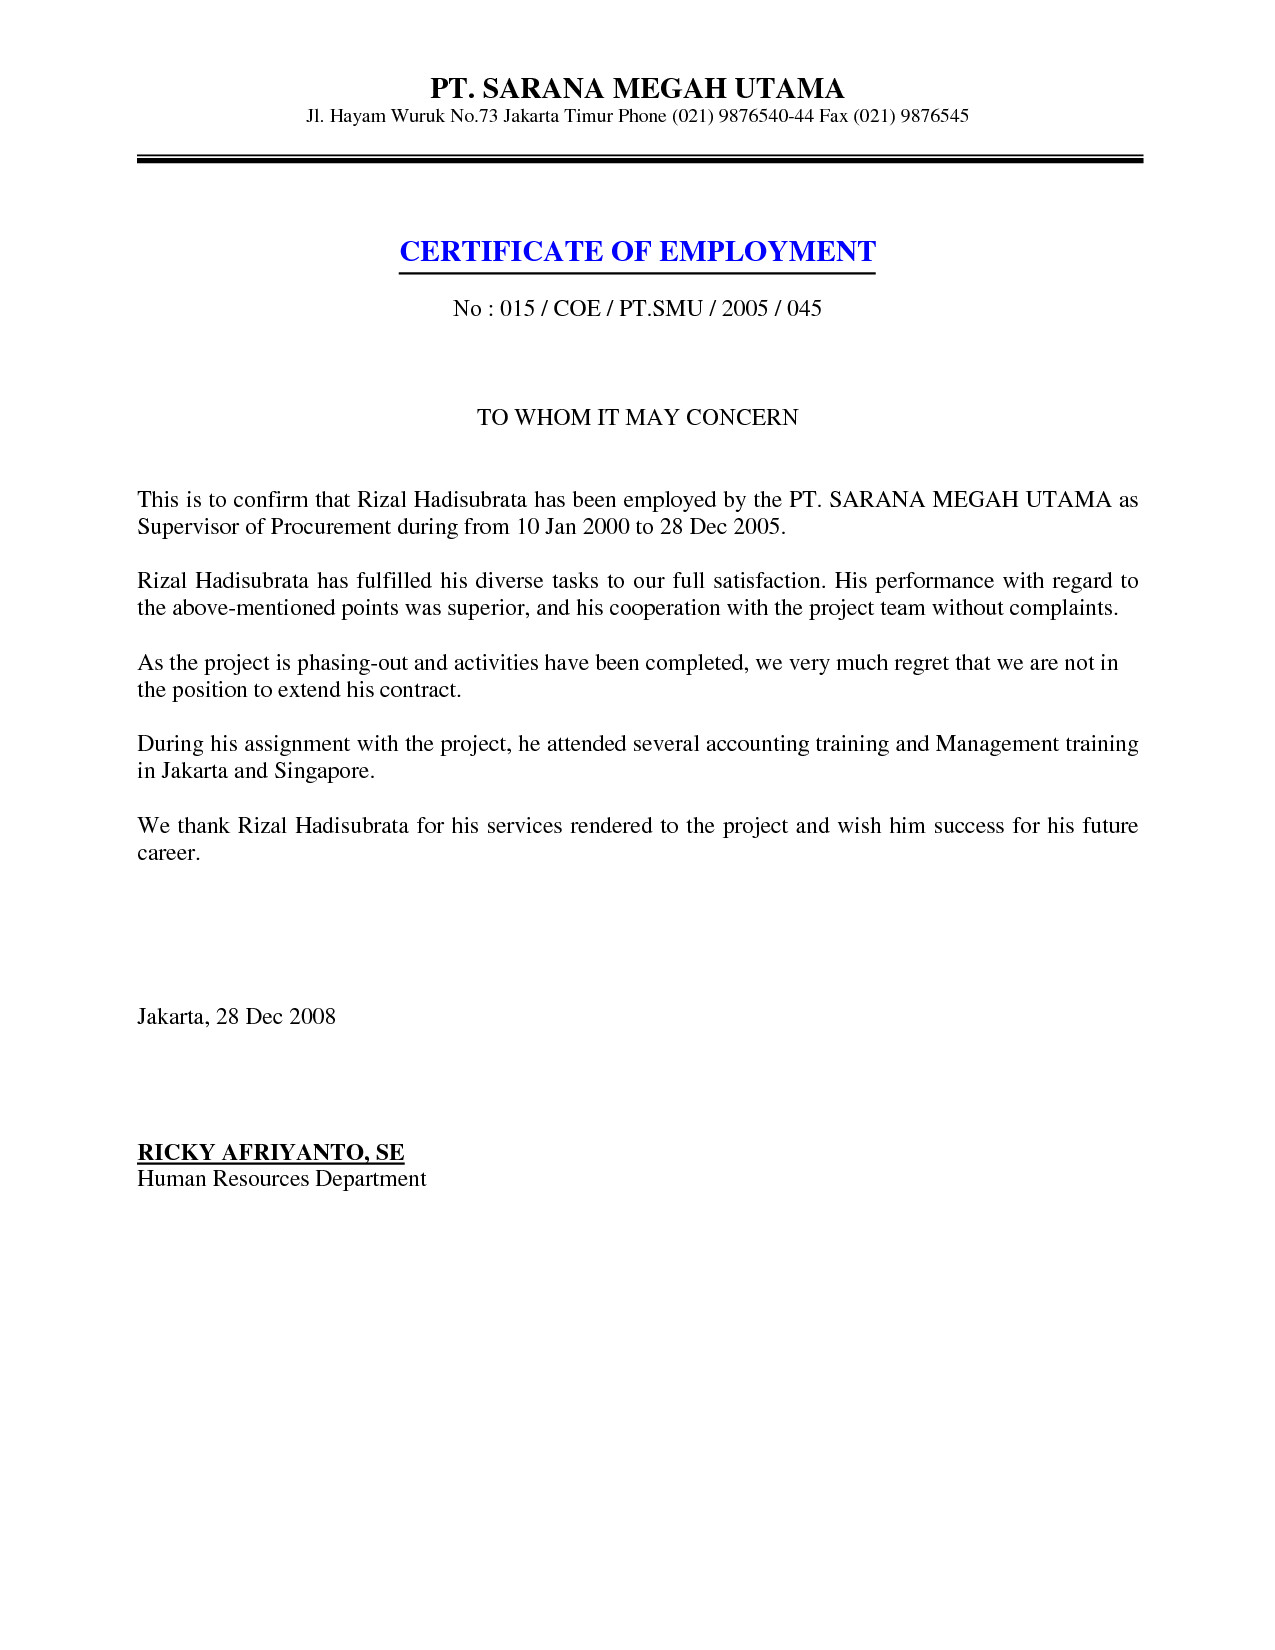 Sample Certificate Of Employment Job Employment Certificate Sample Certification Letter